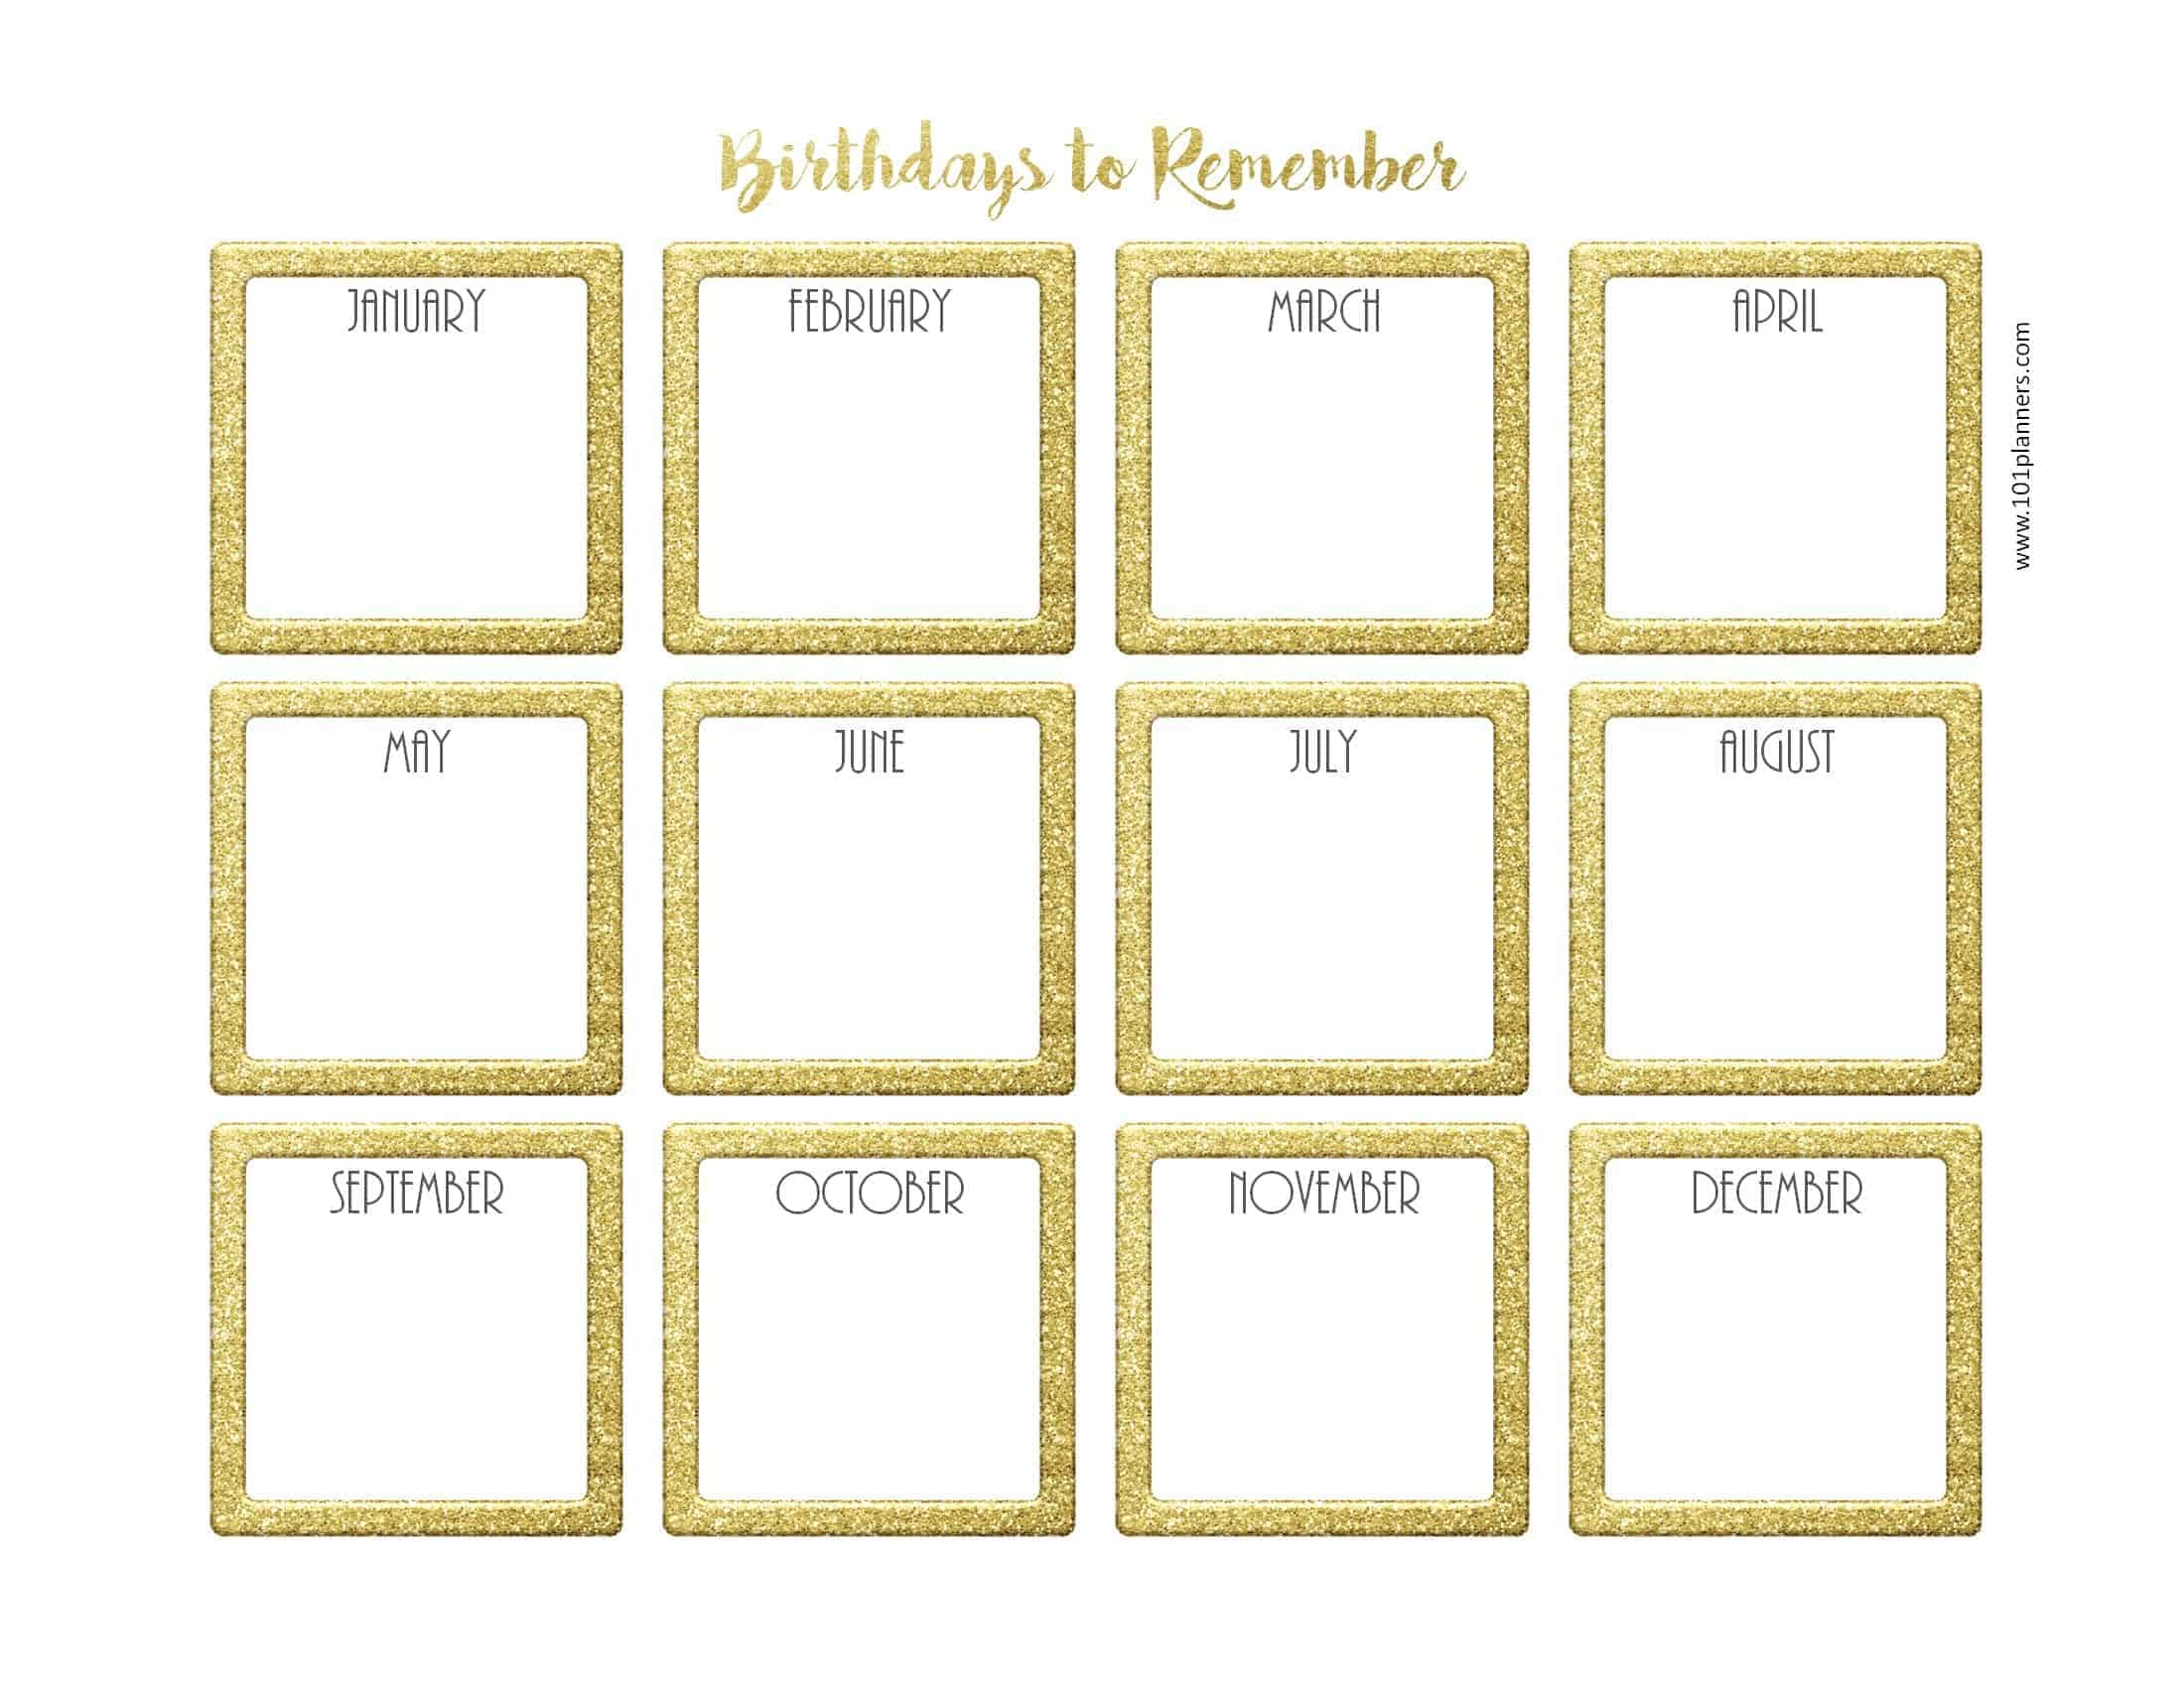 photograph about Birthday List Printable referred to as No cost Birthday Calendar Printable Customizable Innumerable